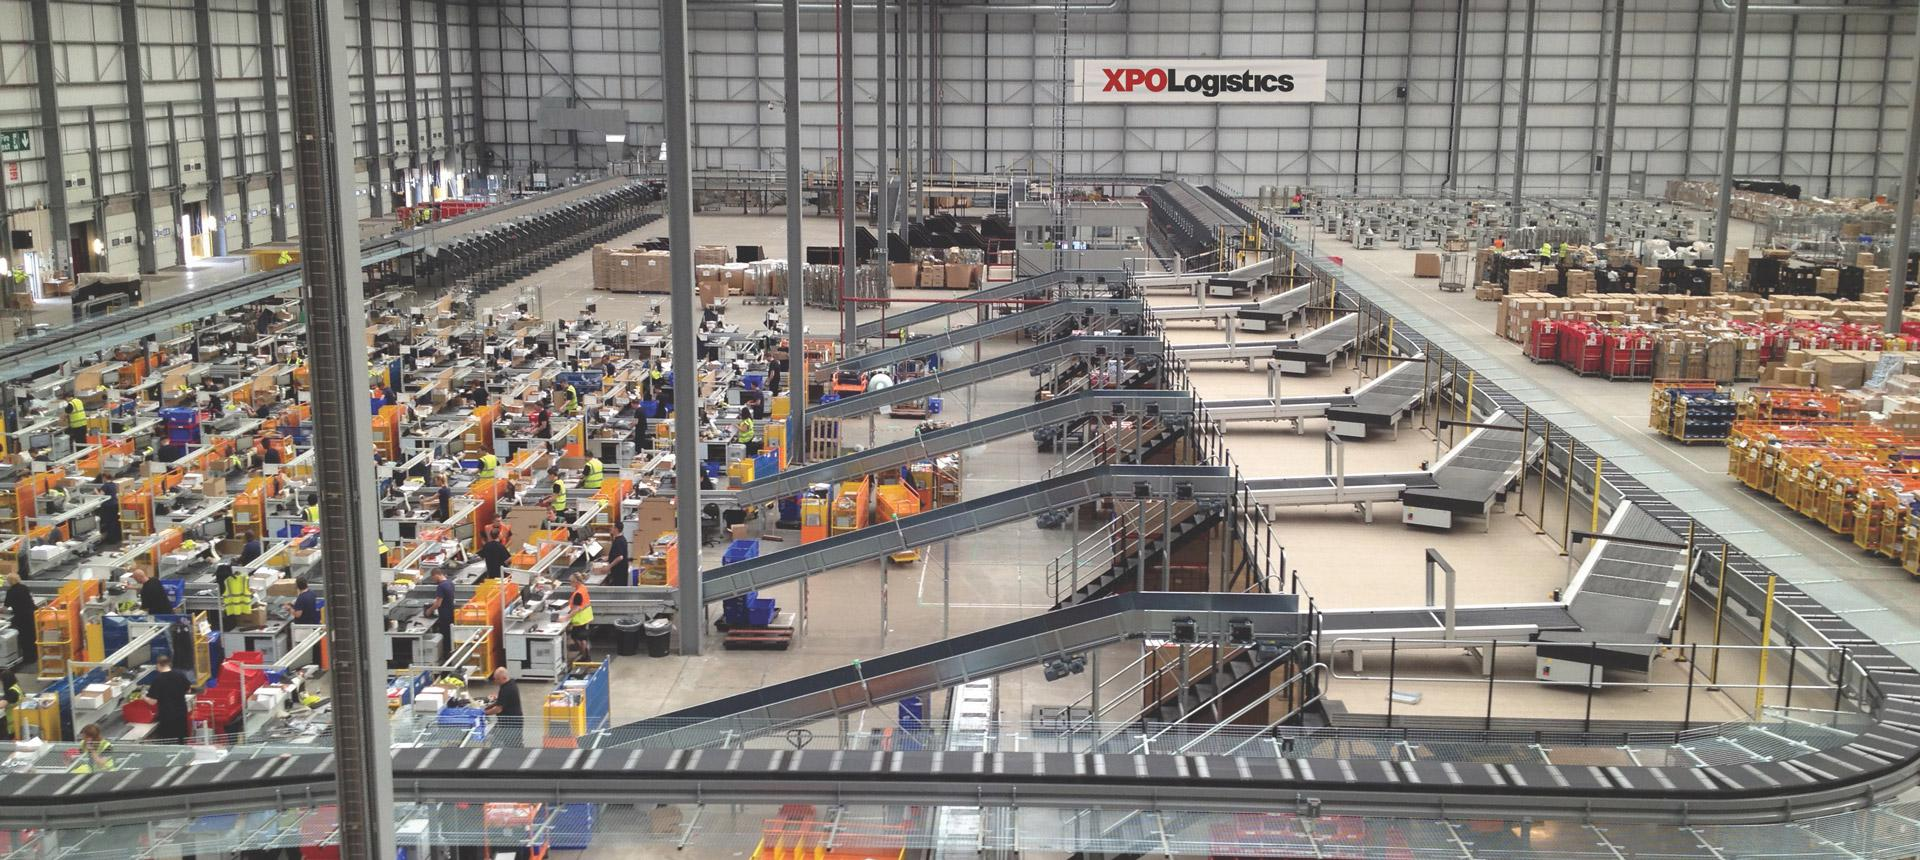 XPO's warehouse